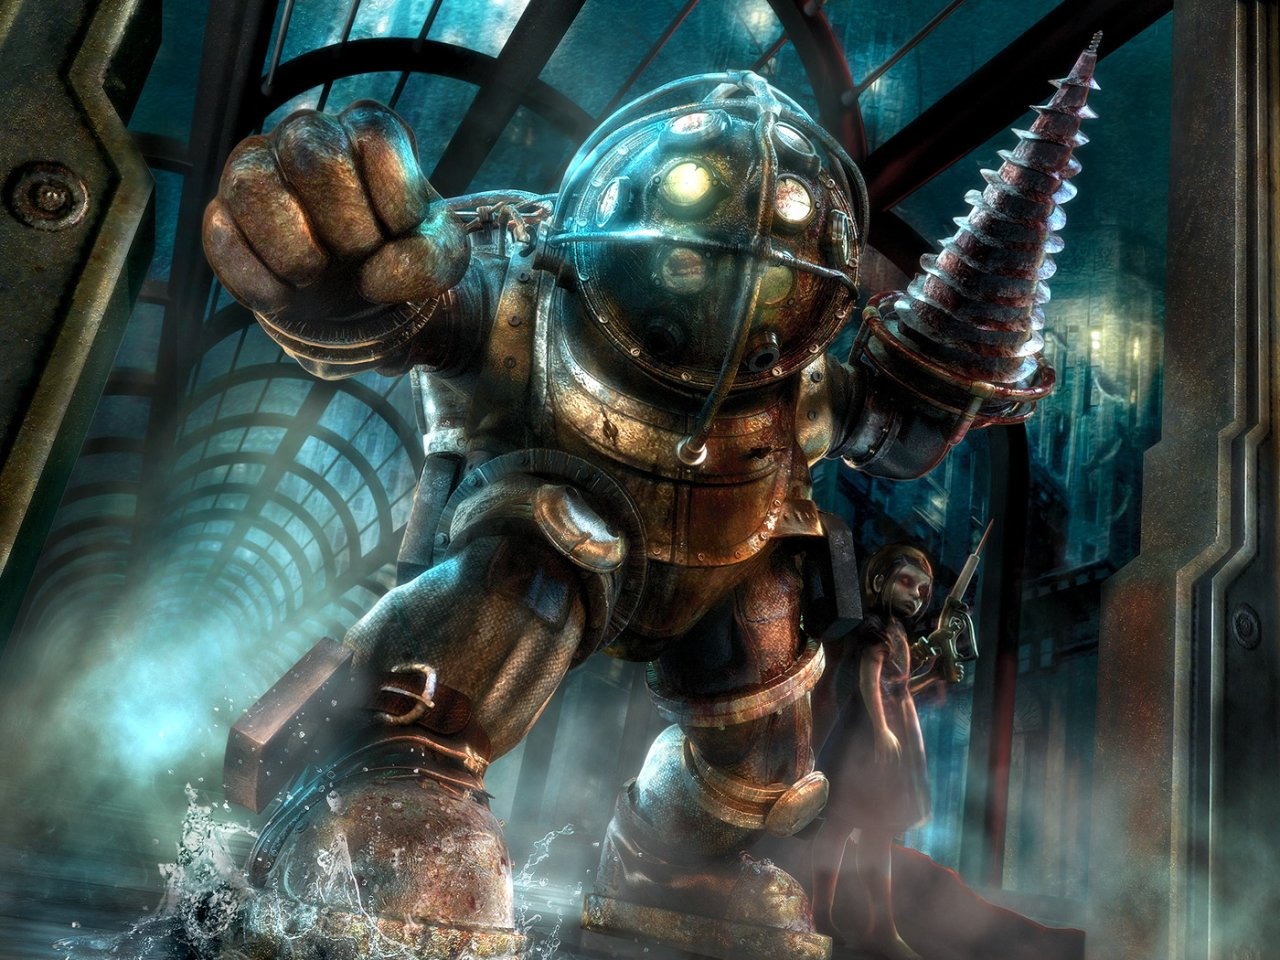 No <i>BioShock</i> Movie Happening, Says Game's Creator